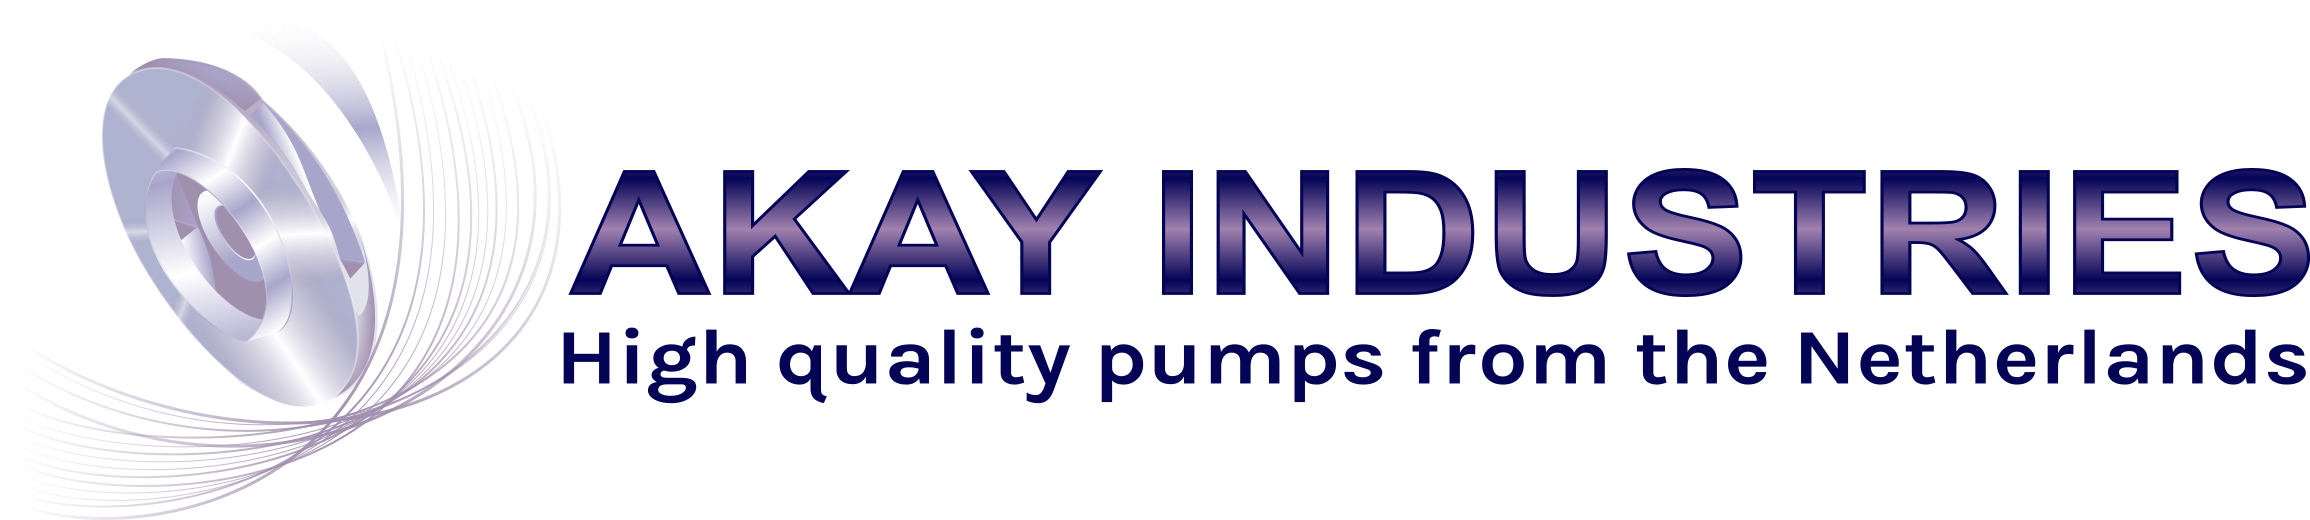 Akay Industries